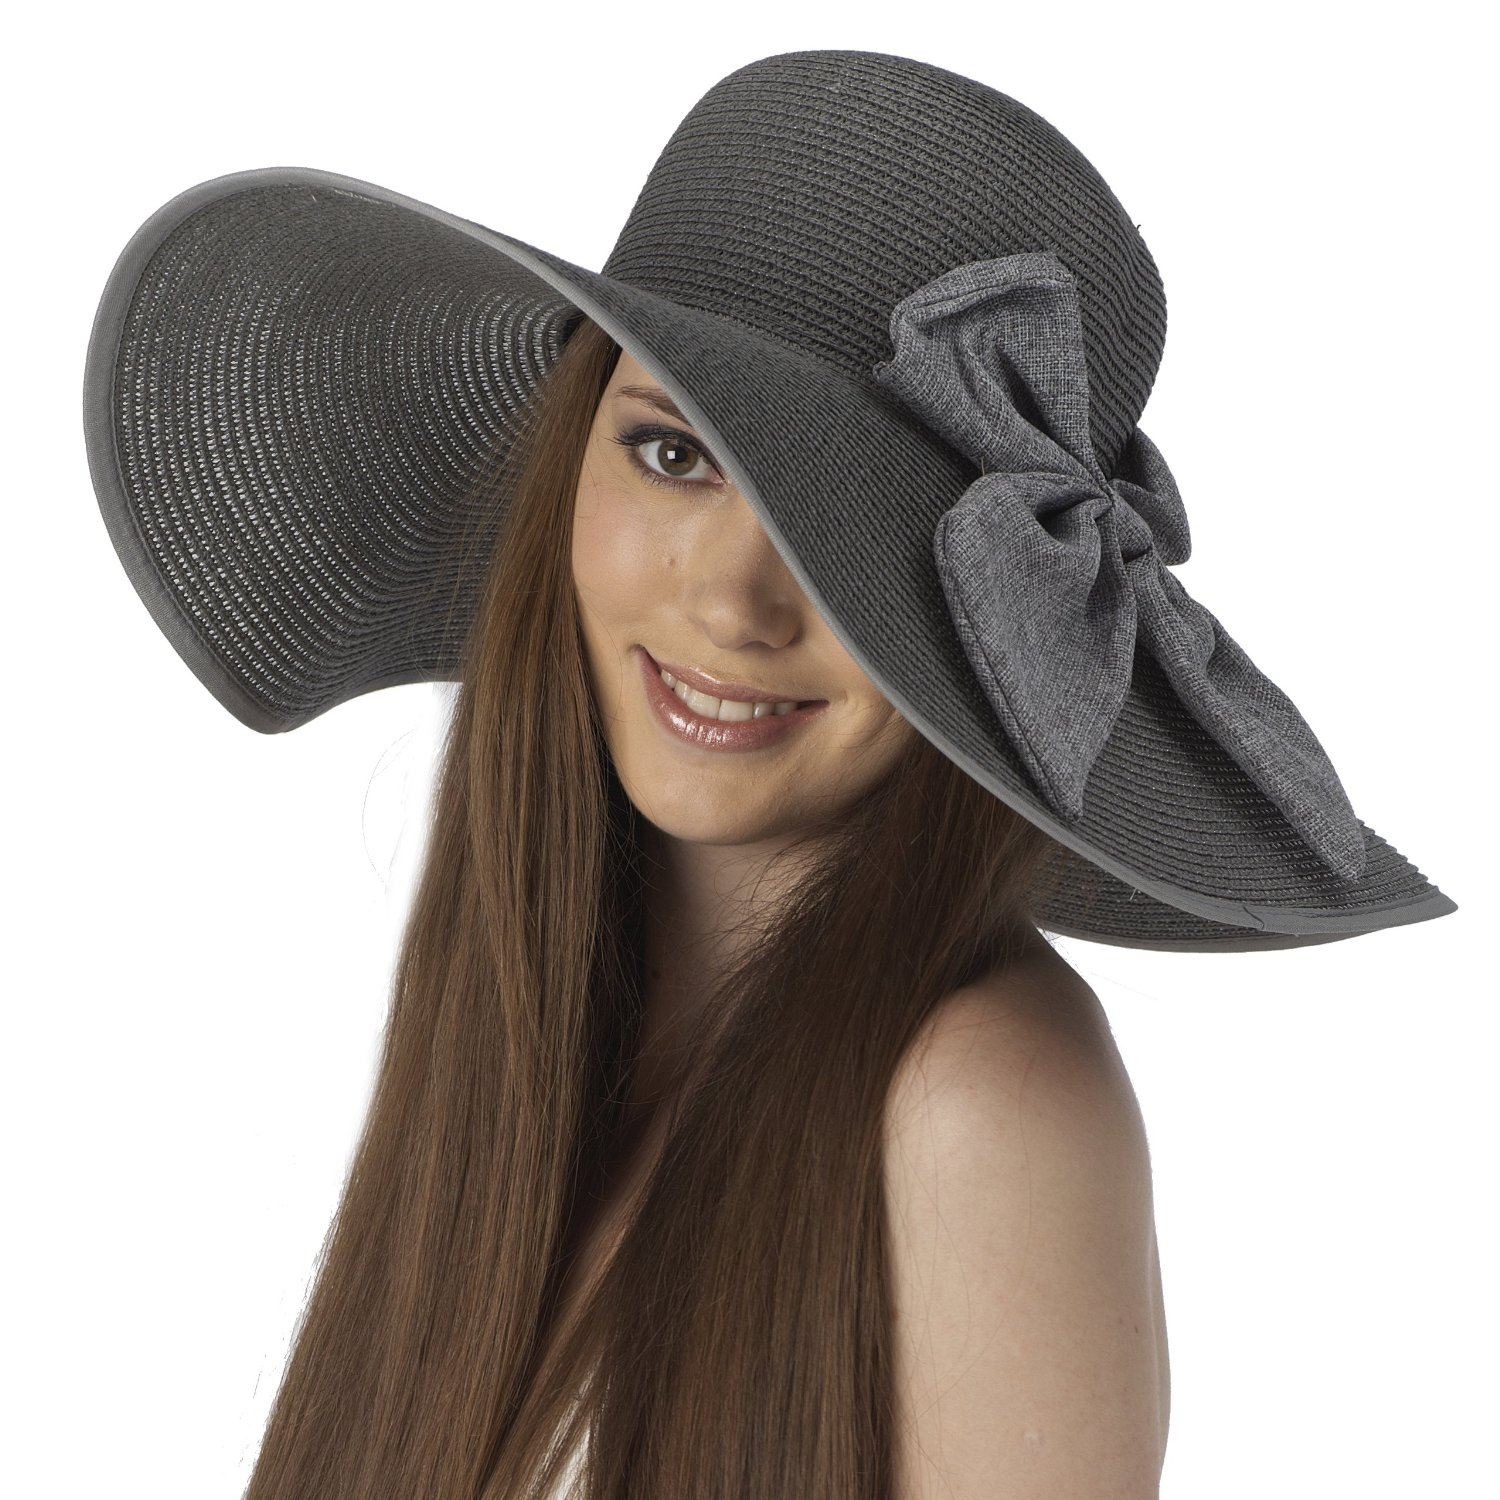 Hats for Girls: Sun Hats, Beach Hats, Fedoras & Caps Let's face it, while hats and caps were originally designed to keep the sun out of a person's eyes, a bad hair day has quickly become just as .